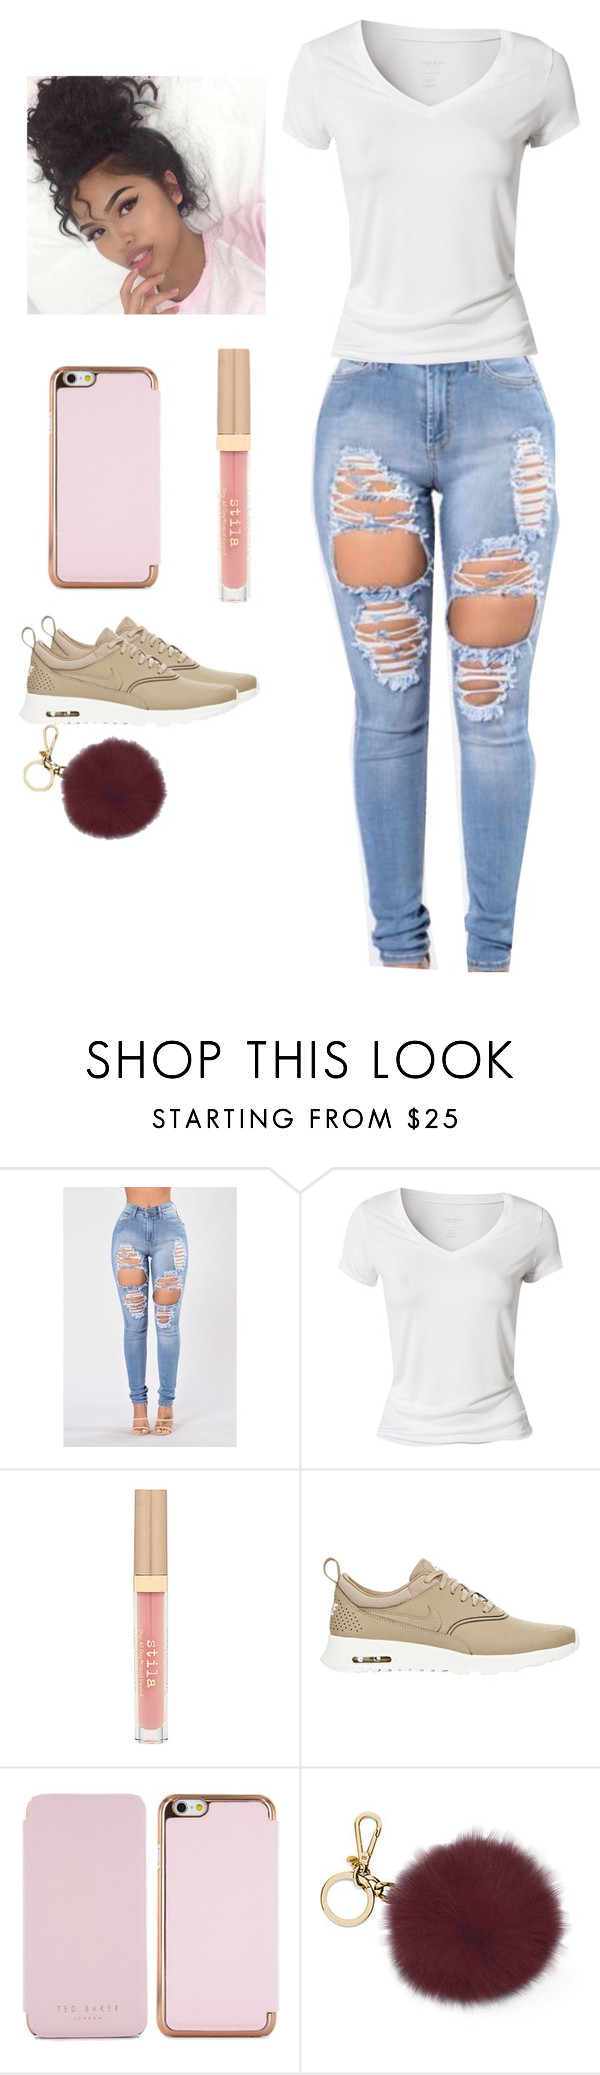 """""""laid back kinda day"""" by official-jamaya ❤ liked on Polyvore featuring Calvin Klein, Stila, NIKE, Ted Baker and Michael Kors"""